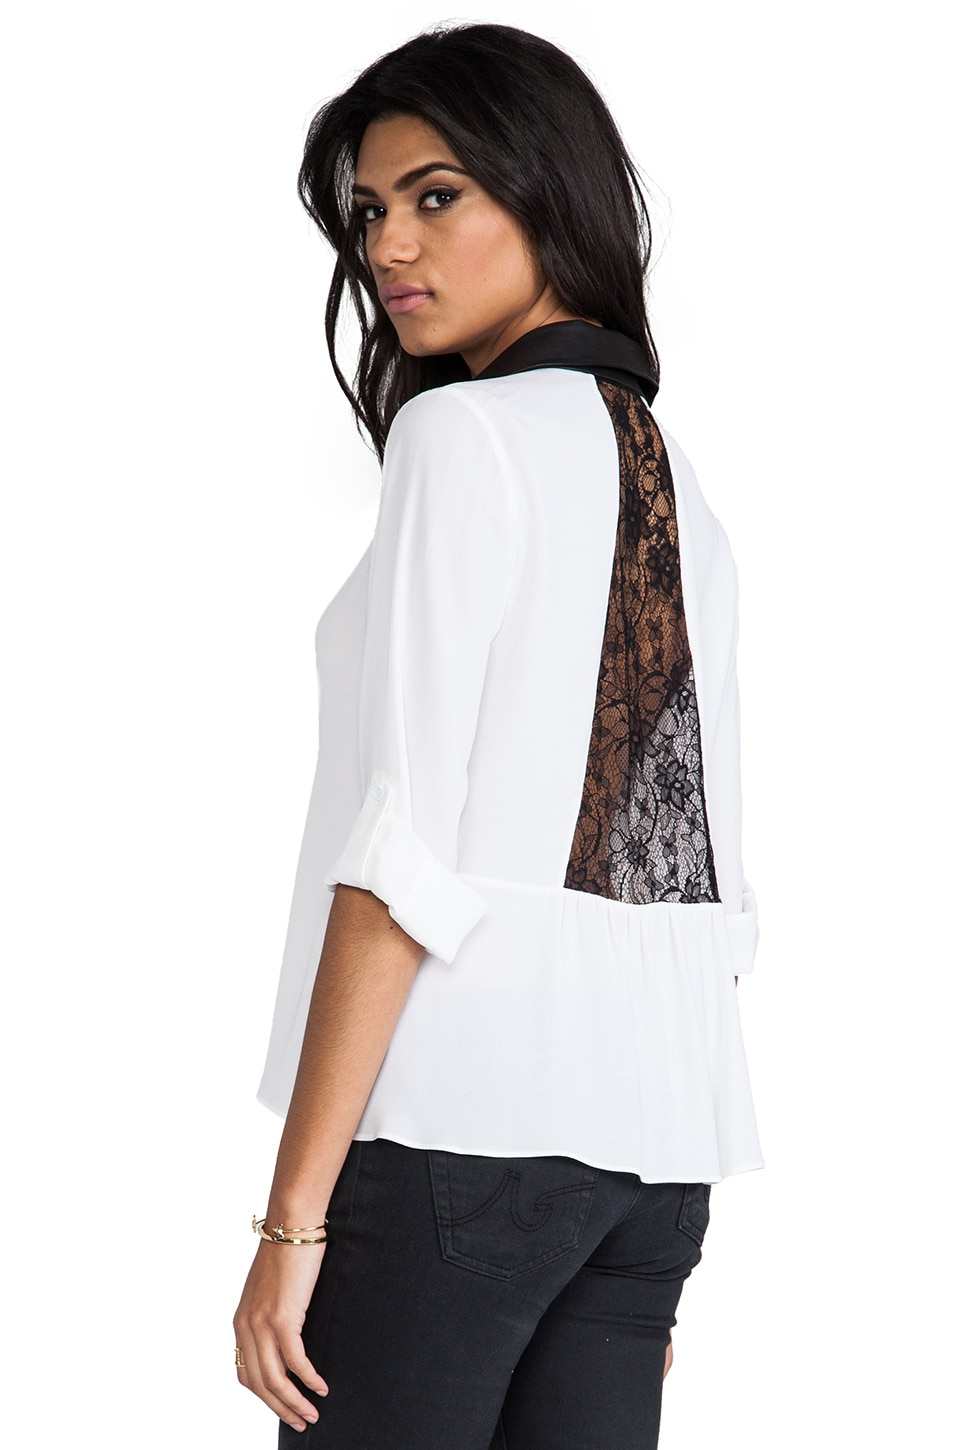 Alice + Olivia Darma Black Detail Flare Blouse in White